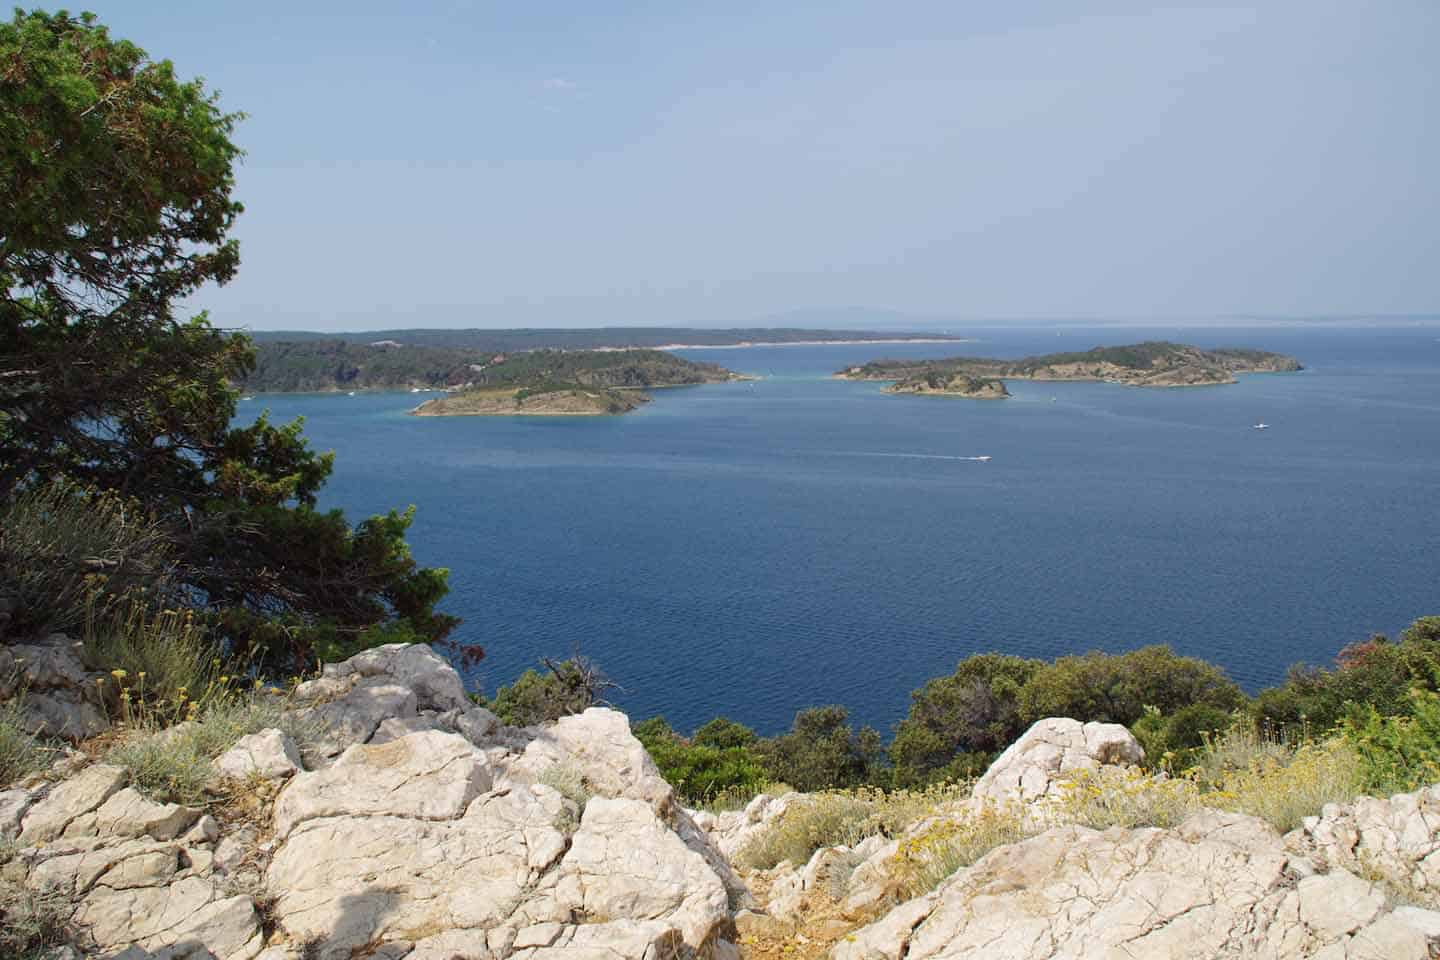 Rab Croatia viewpoint Lopar